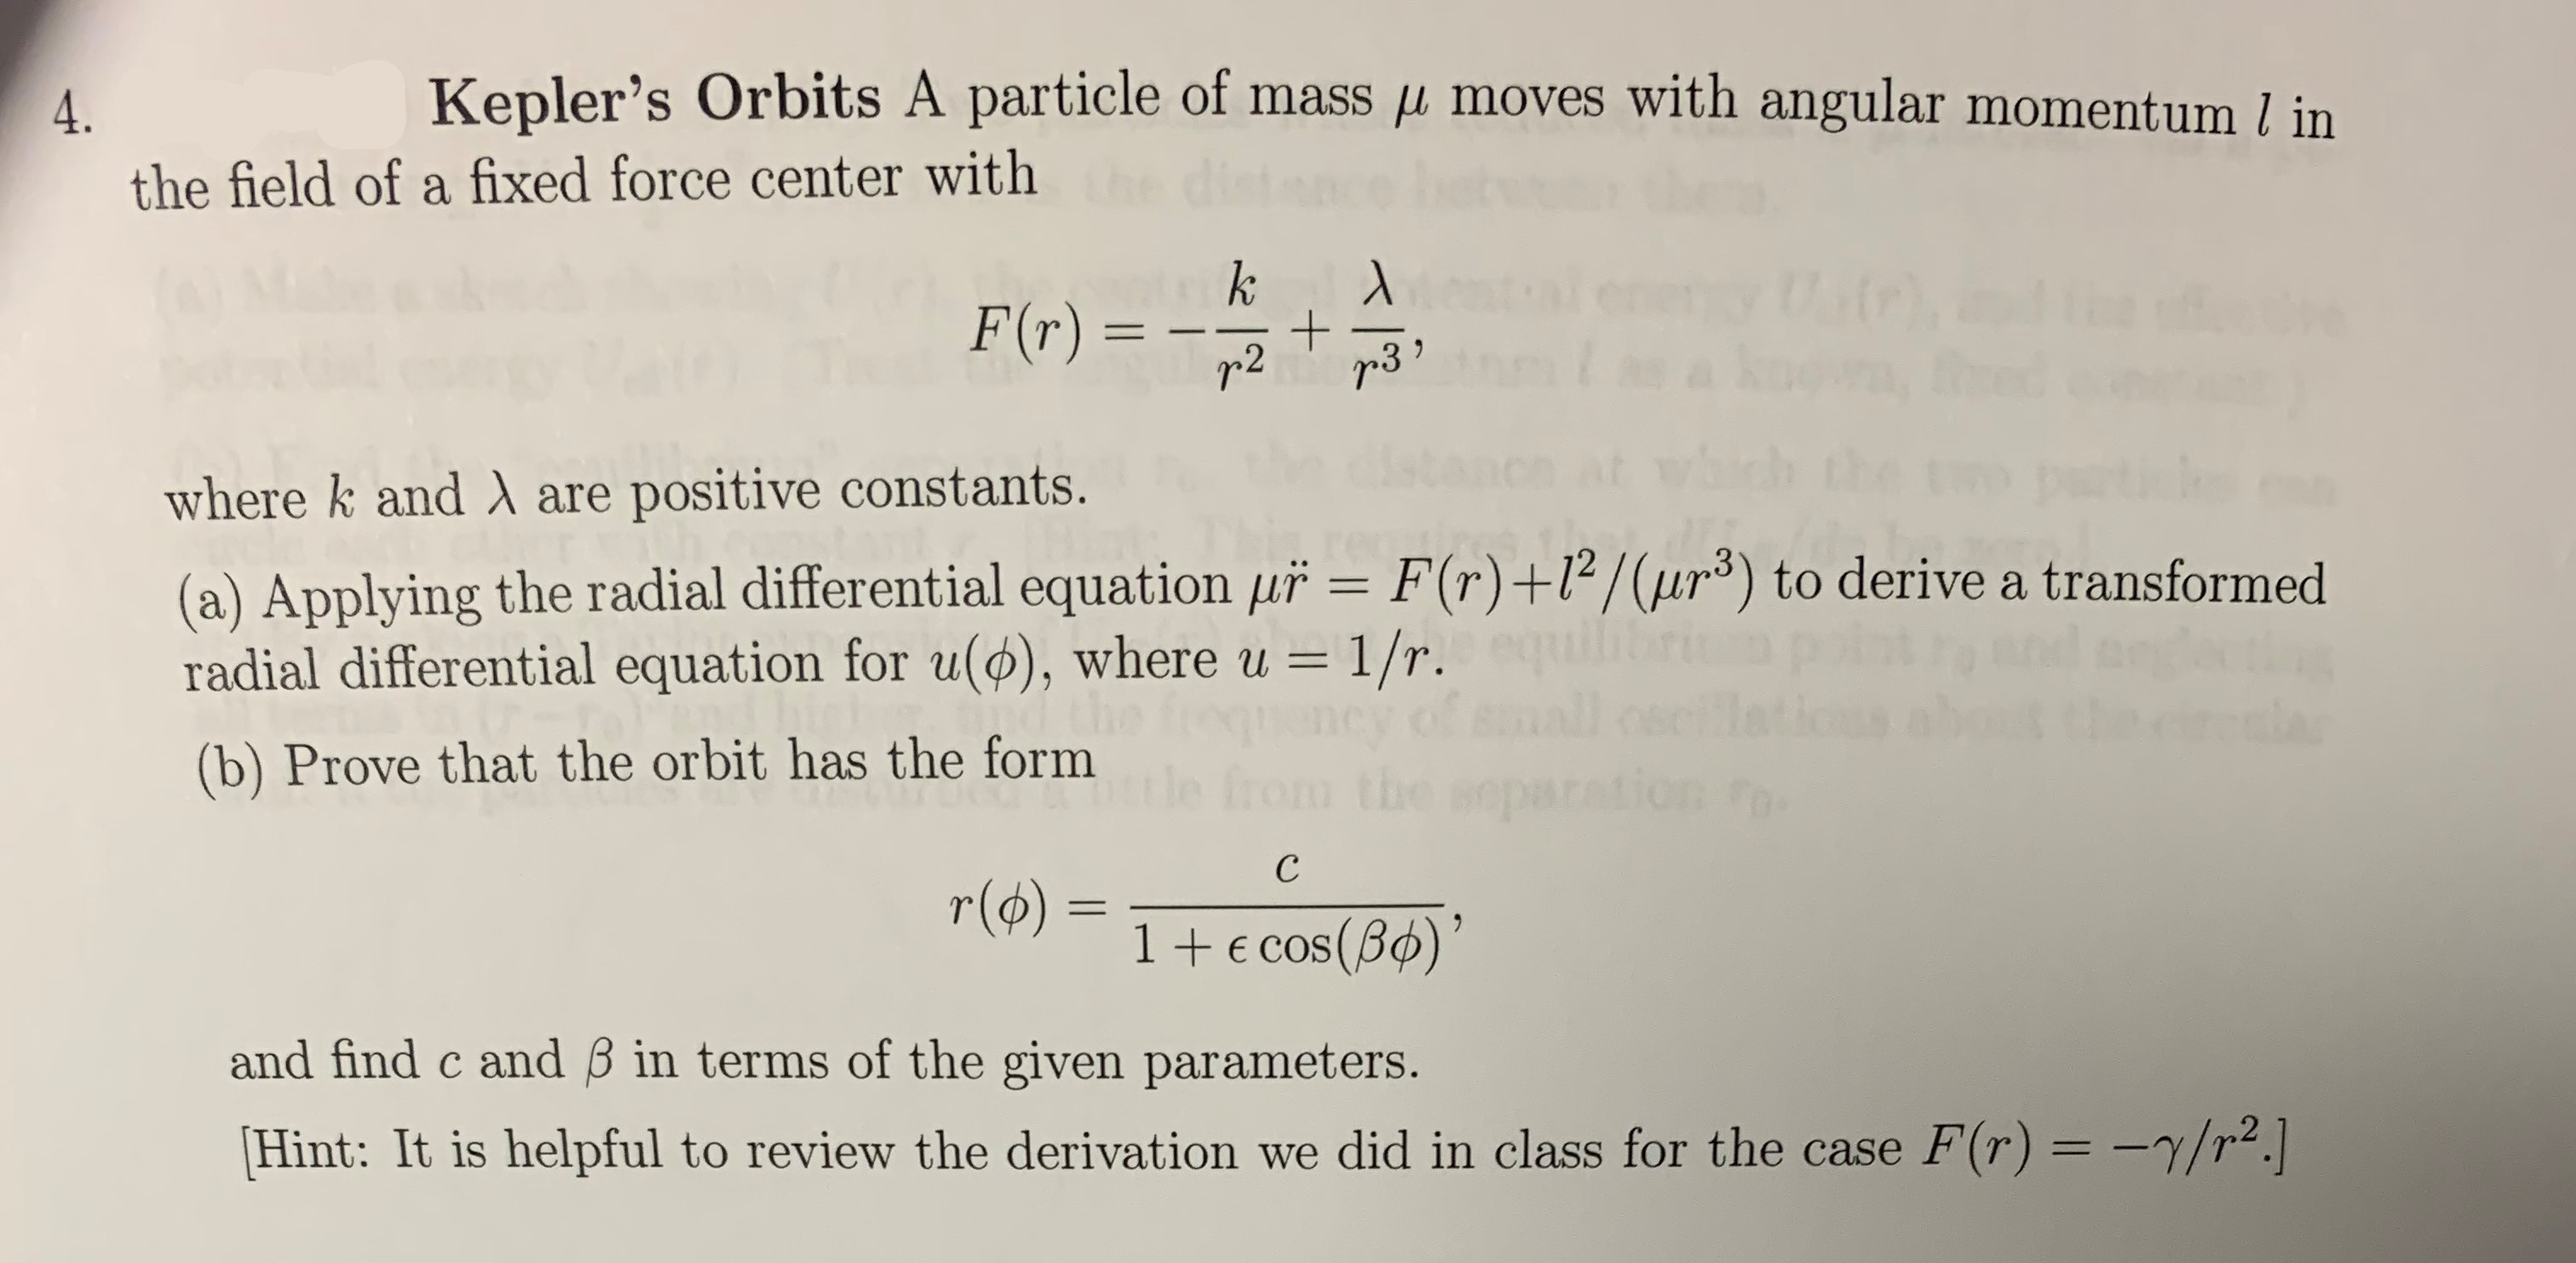 Kepler's Orbits A particle of mass p moves with angular momentum l in the field of a fixed force center with k F(r) = + r3 r 2 where k and A are positive constants. (a) Applying the radial differential equation uř = F(r) +l2/(ur3) to derive a transformed radial differential equation for u(), where u = 1/r. (b) Prove that the orbit has the form tle from the separation с r(o) 1+E cos (B) and find c and B in terms of the given parameters. Hint: It is helpful to review the derivation we did in class for the case F(r) = -7/r2.